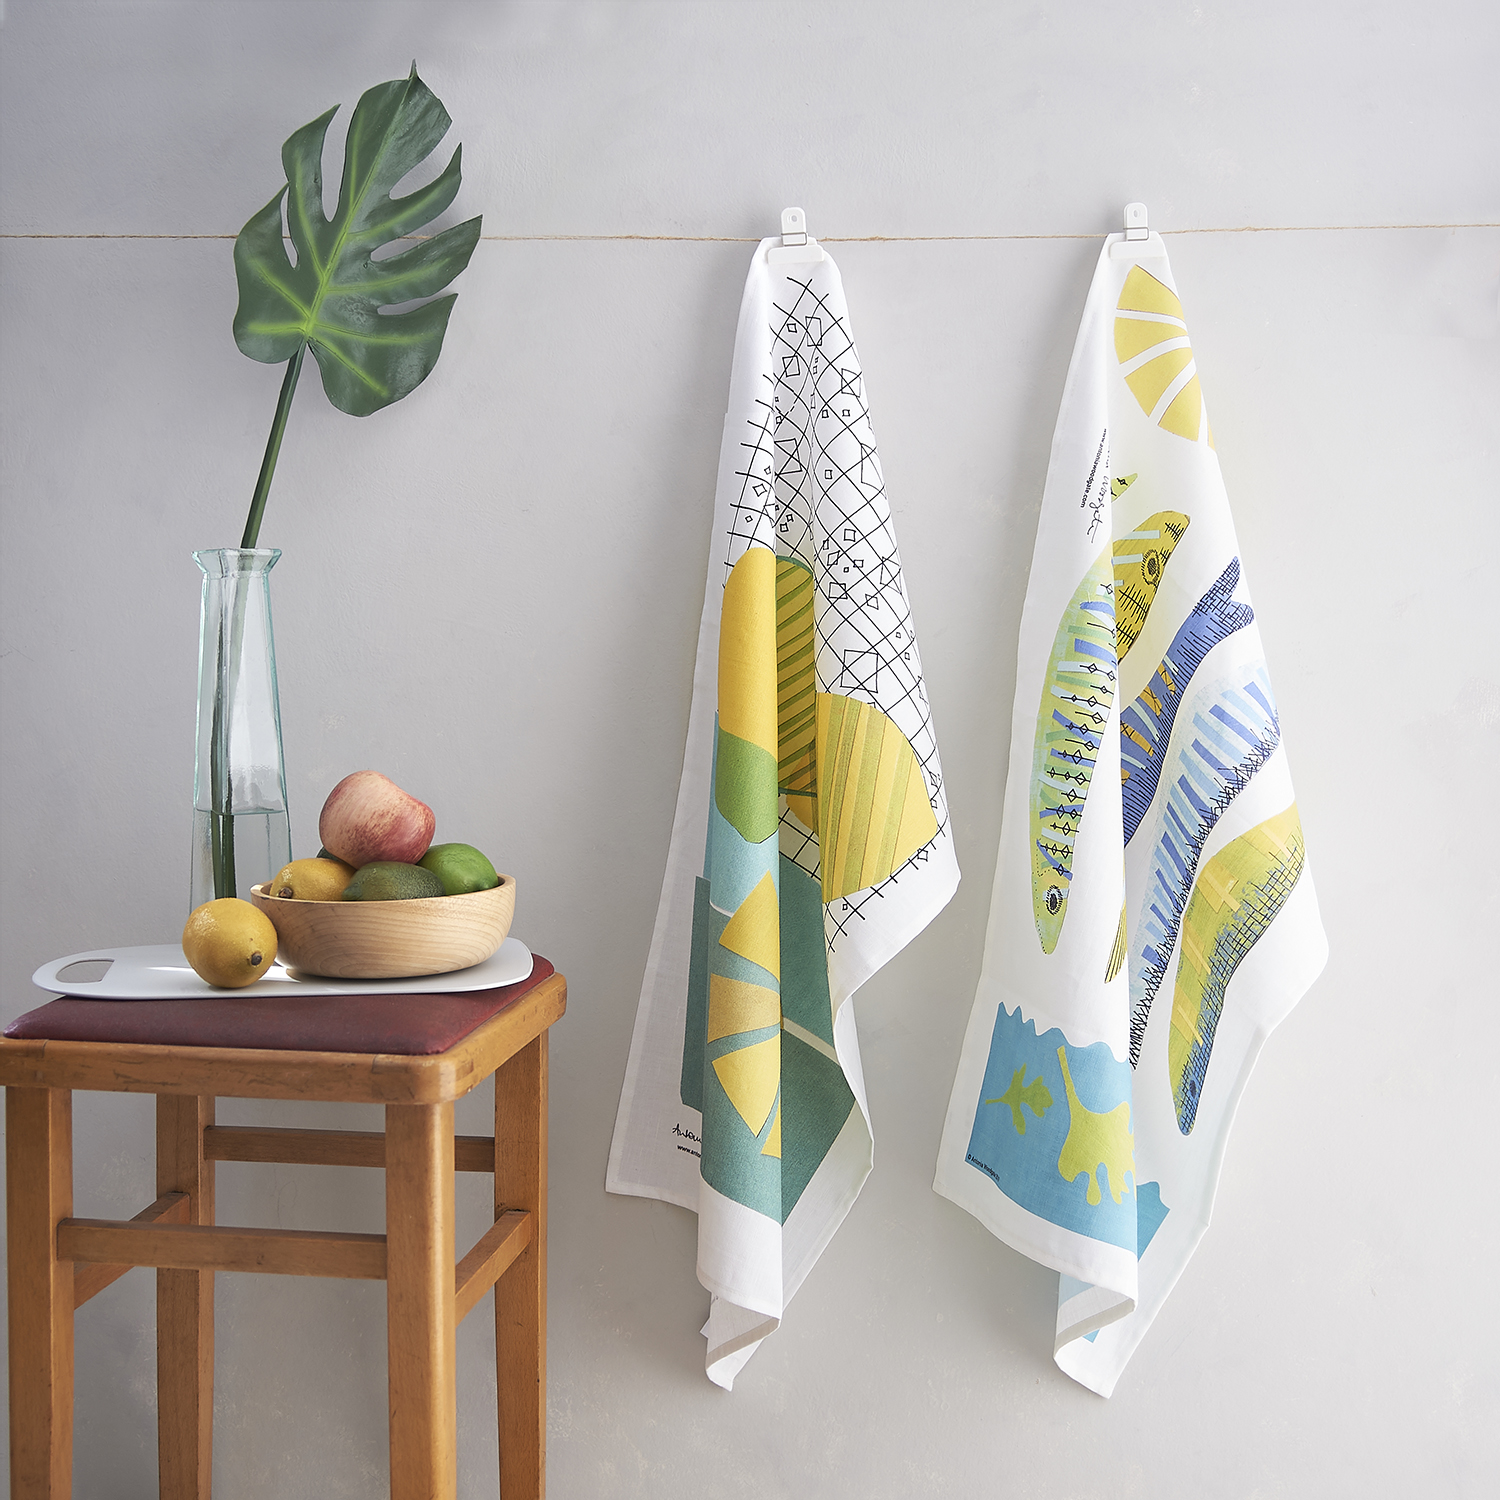 Tea towels by Antonia Woodgate in setting with mid century kitchen stool and other kitchen props